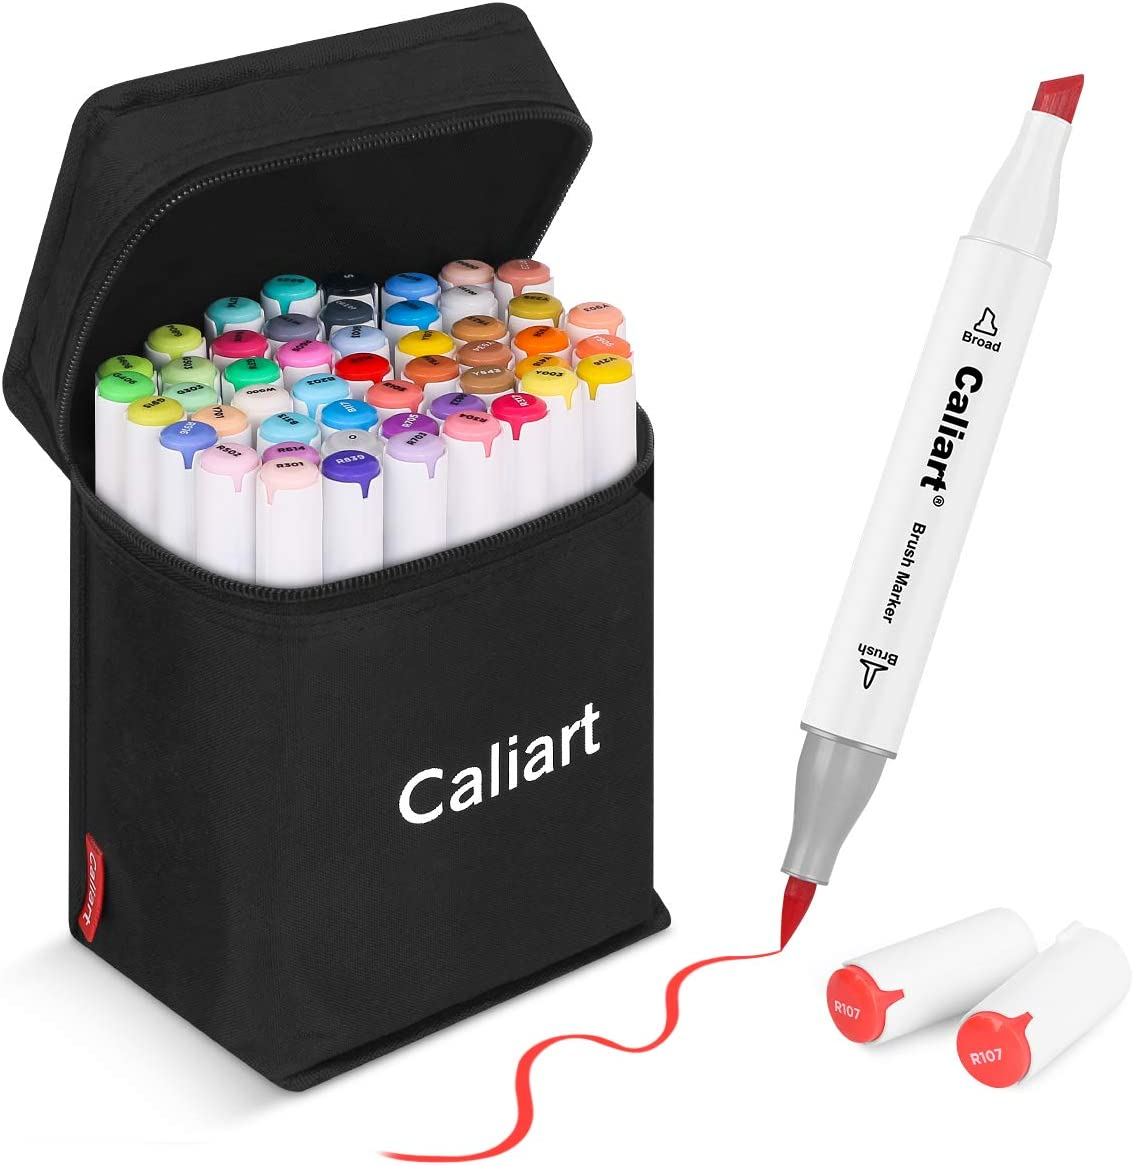 51 Colors Alcohol Brush Markers, Caliart Dual Tip (Brush & Chisel) Art Markers Permanent Sketch Markers for Kids, Adults Coloring and Artist Illustration, Bonus 1 Colorless Alcohol Marker Blender